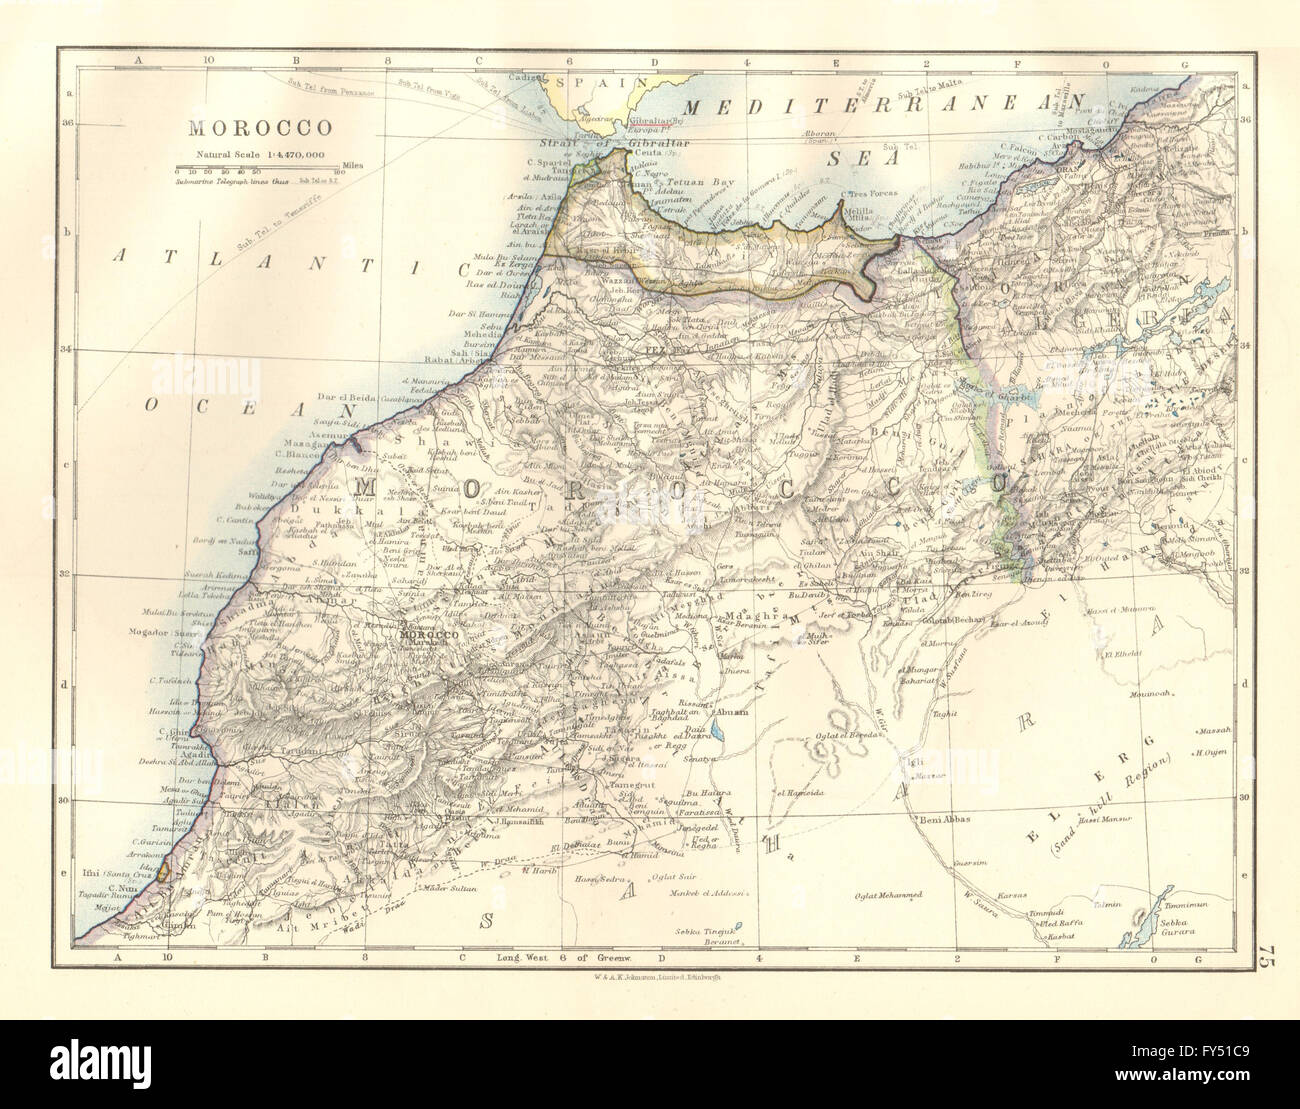 MOROCCO. Spanish protectorate. Protectorado español de Marruecos, 1920 old map - Stock Image